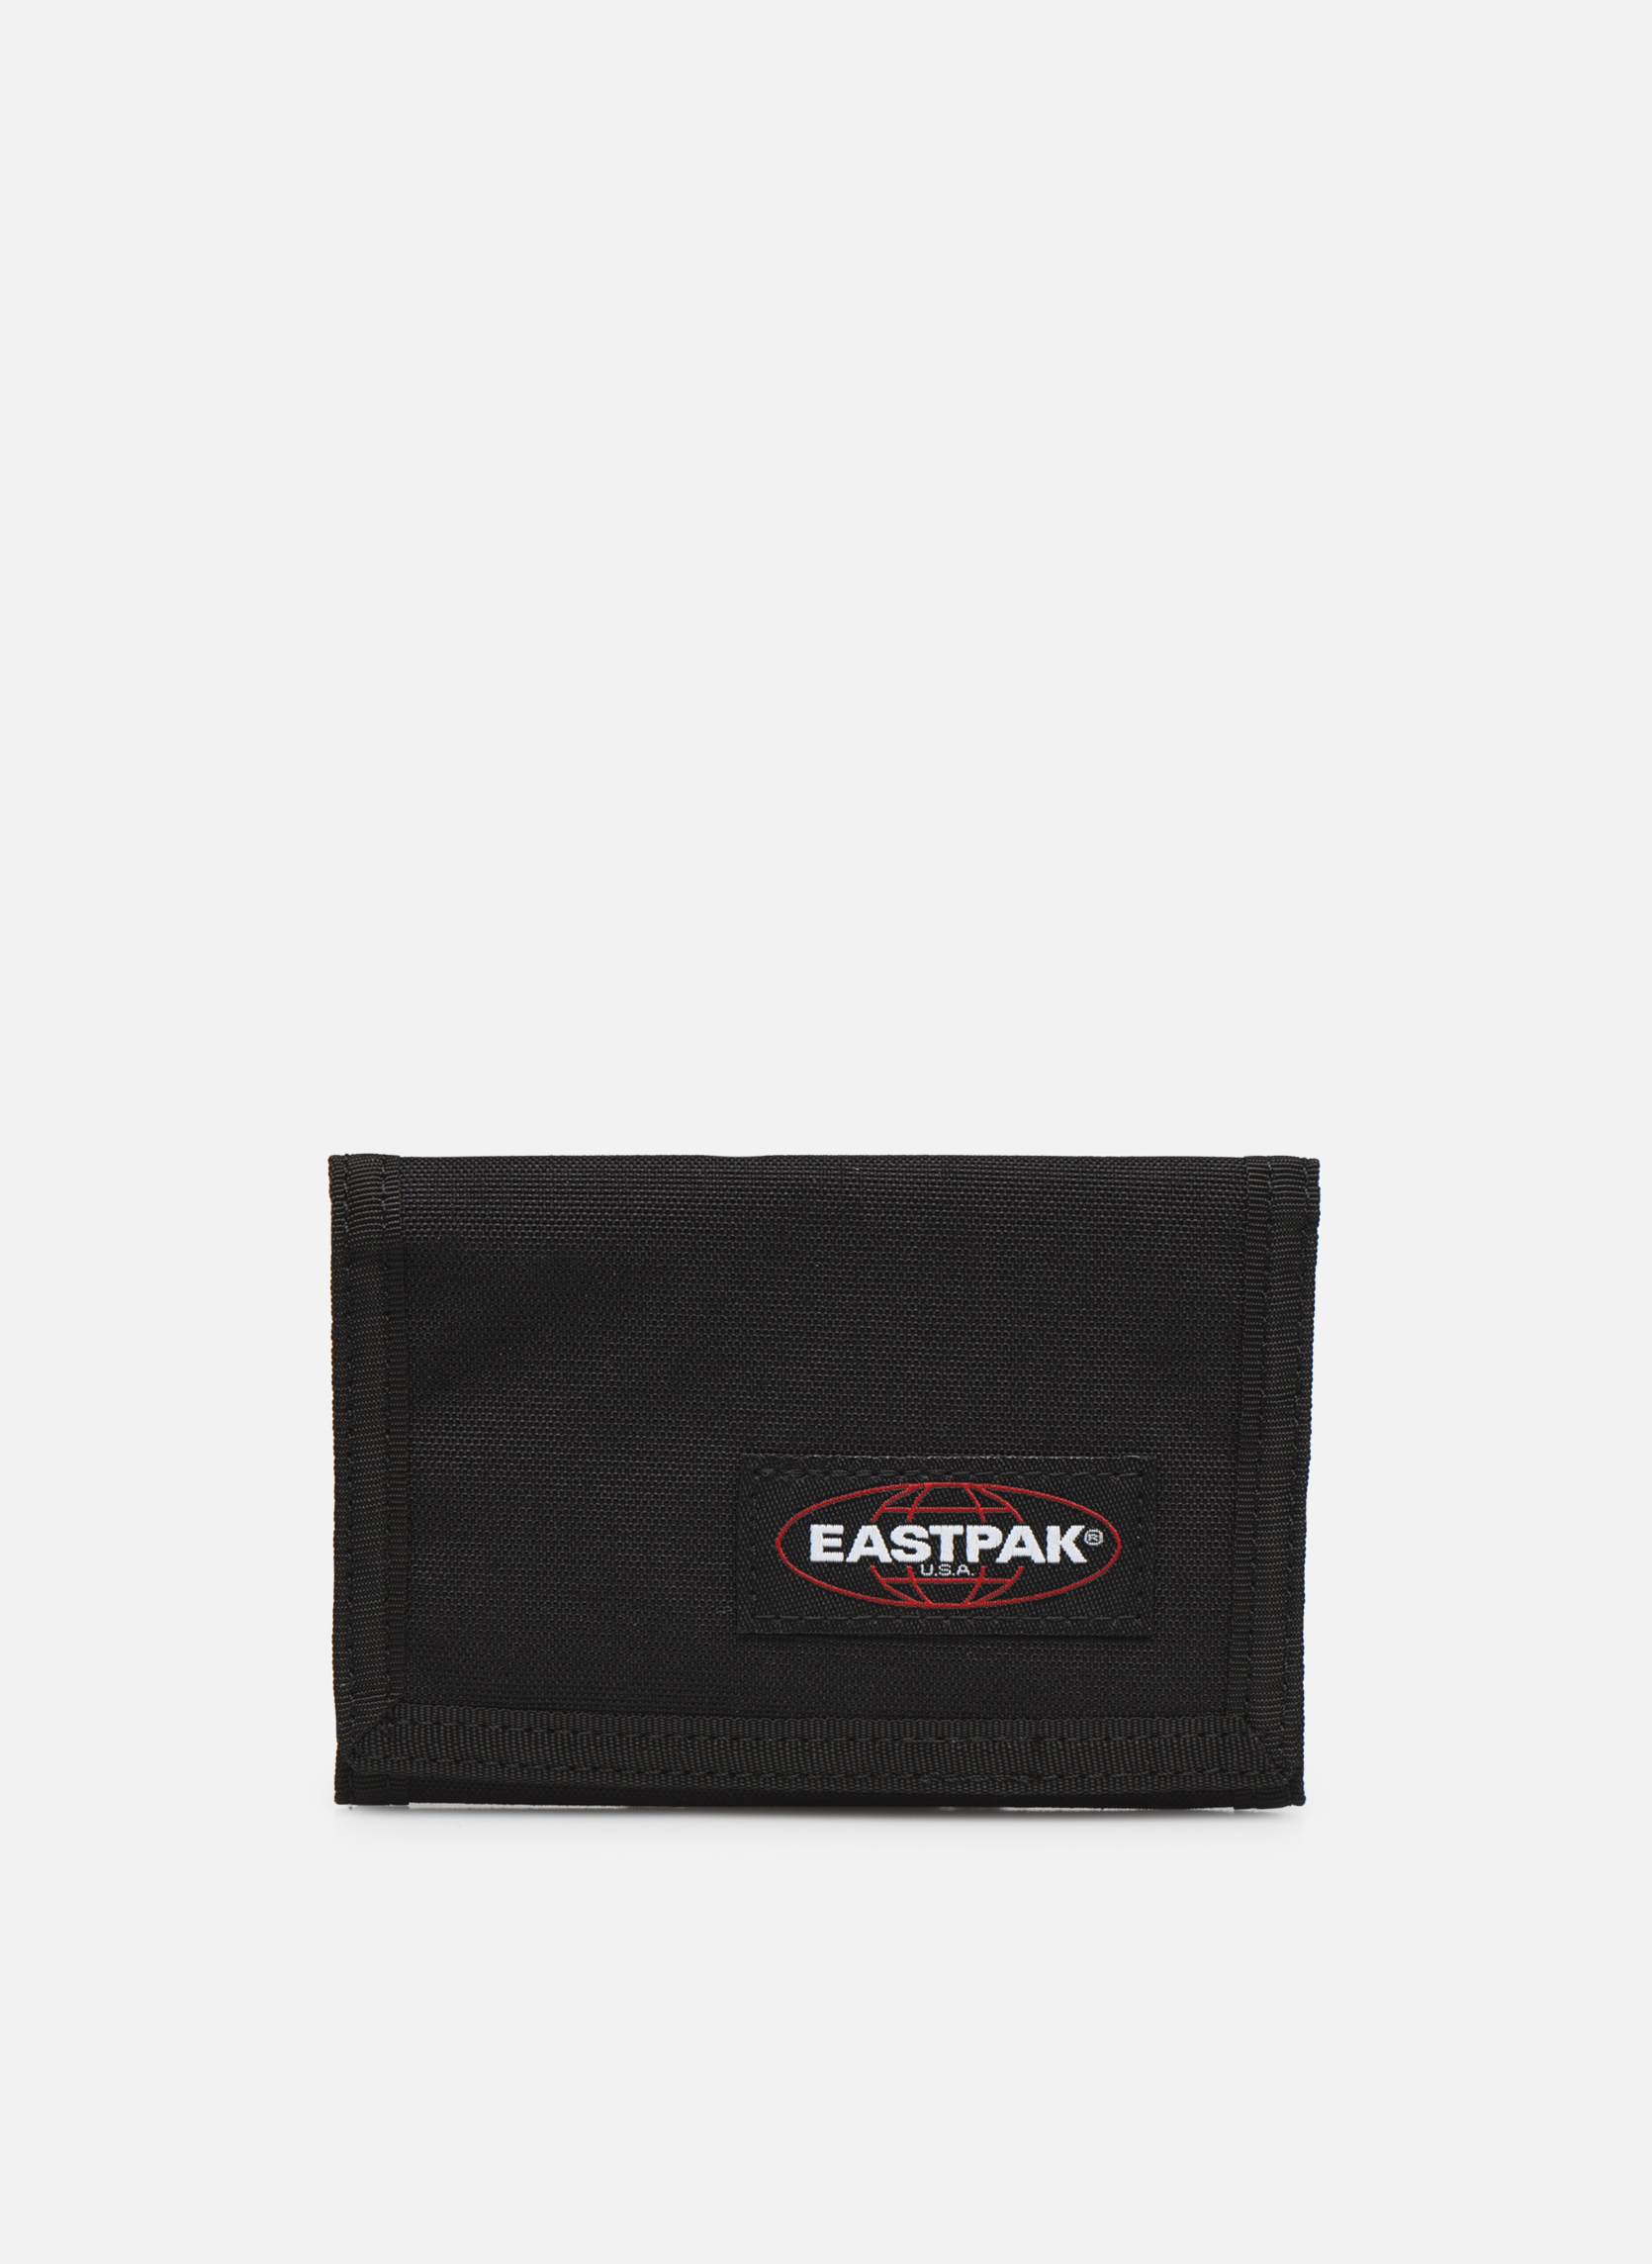 Eastpak CREW Portefeuille toile